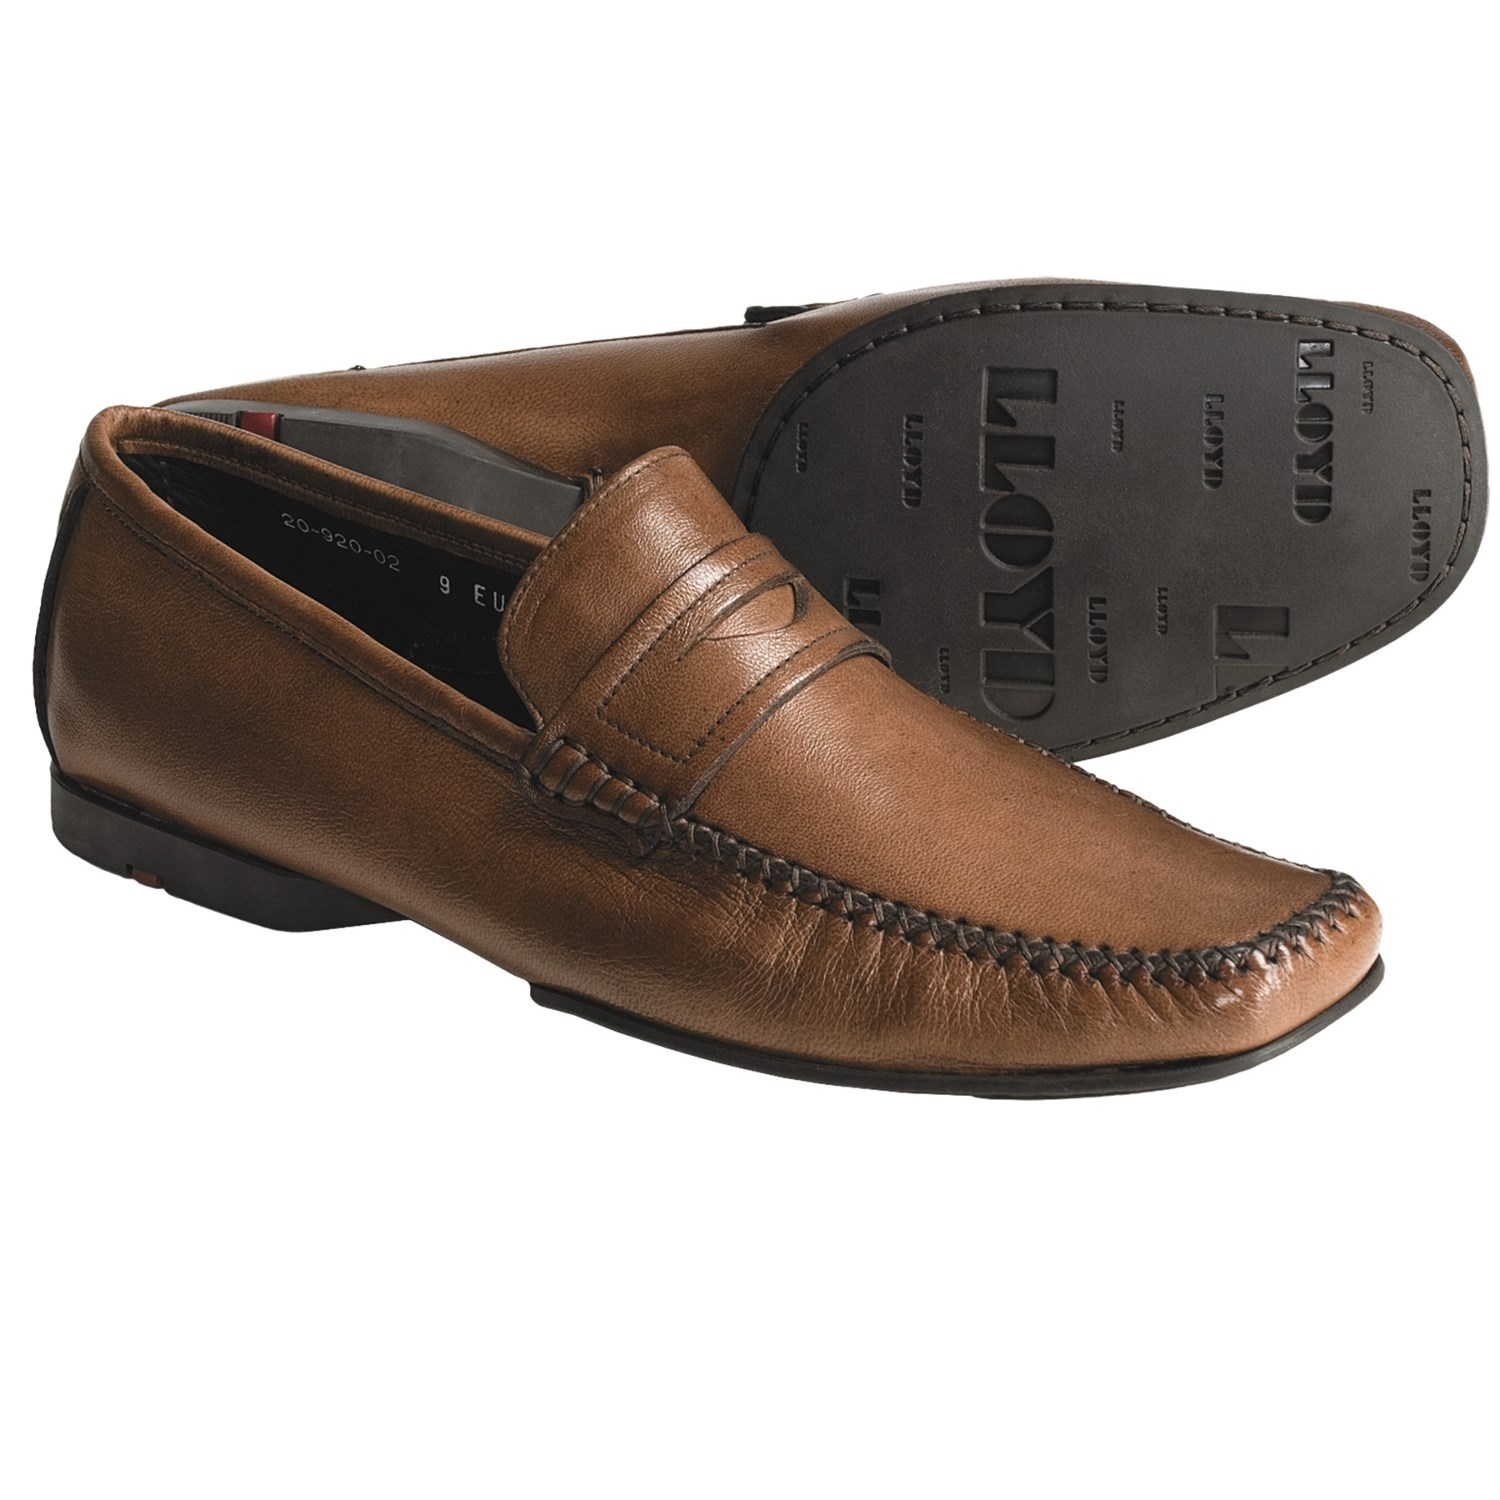 Lloyd Shoes Elian Loafer Shoes - Leather (For Men) - Save 50%